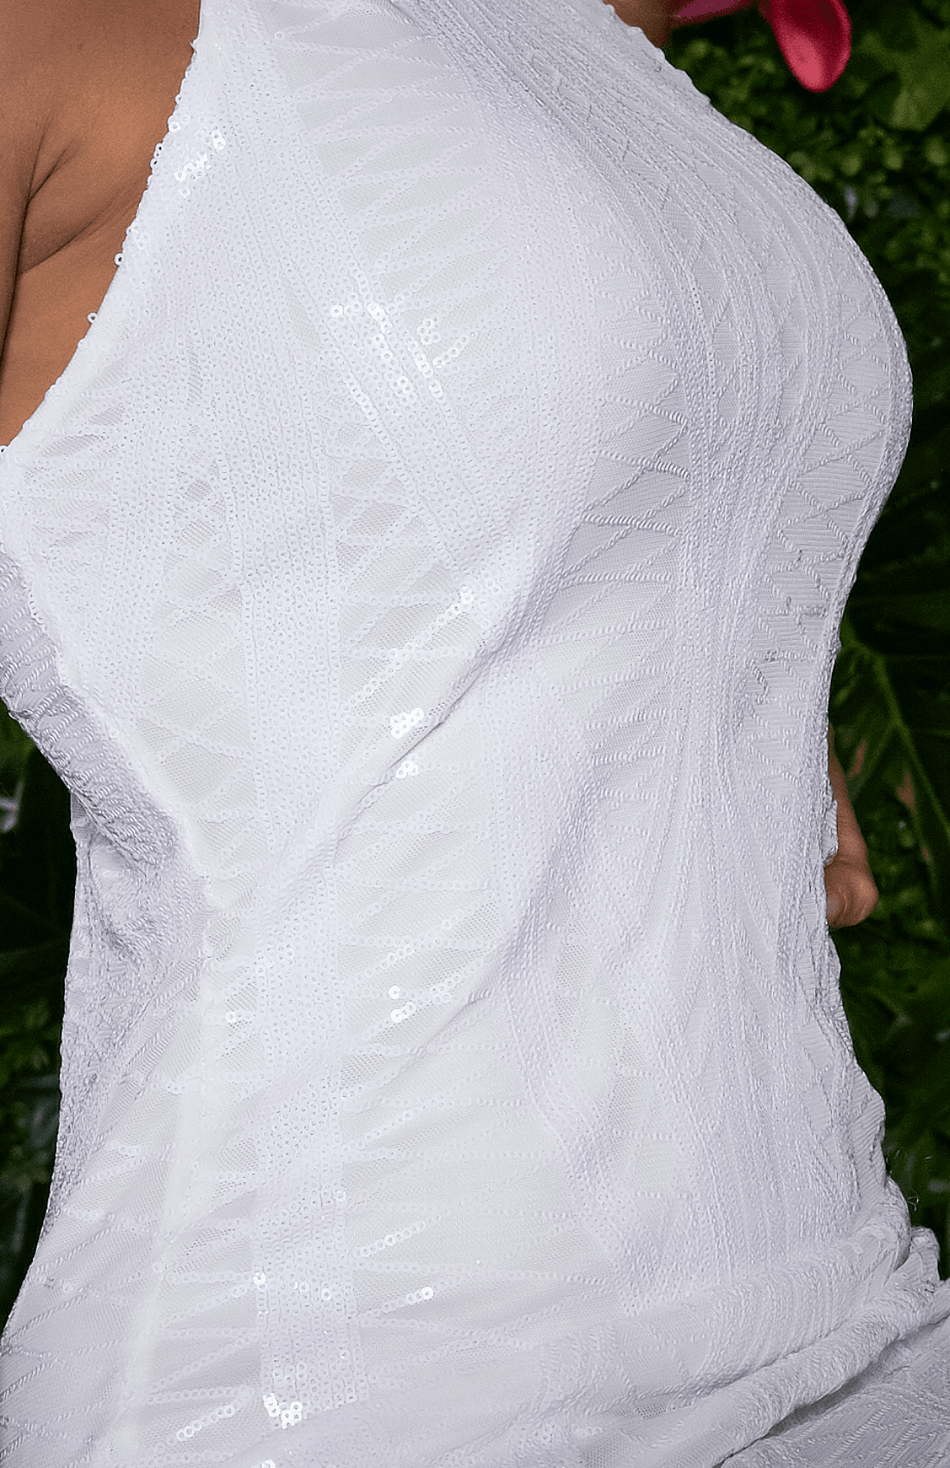 White Lace Neckholder Lace Detail Minikleid